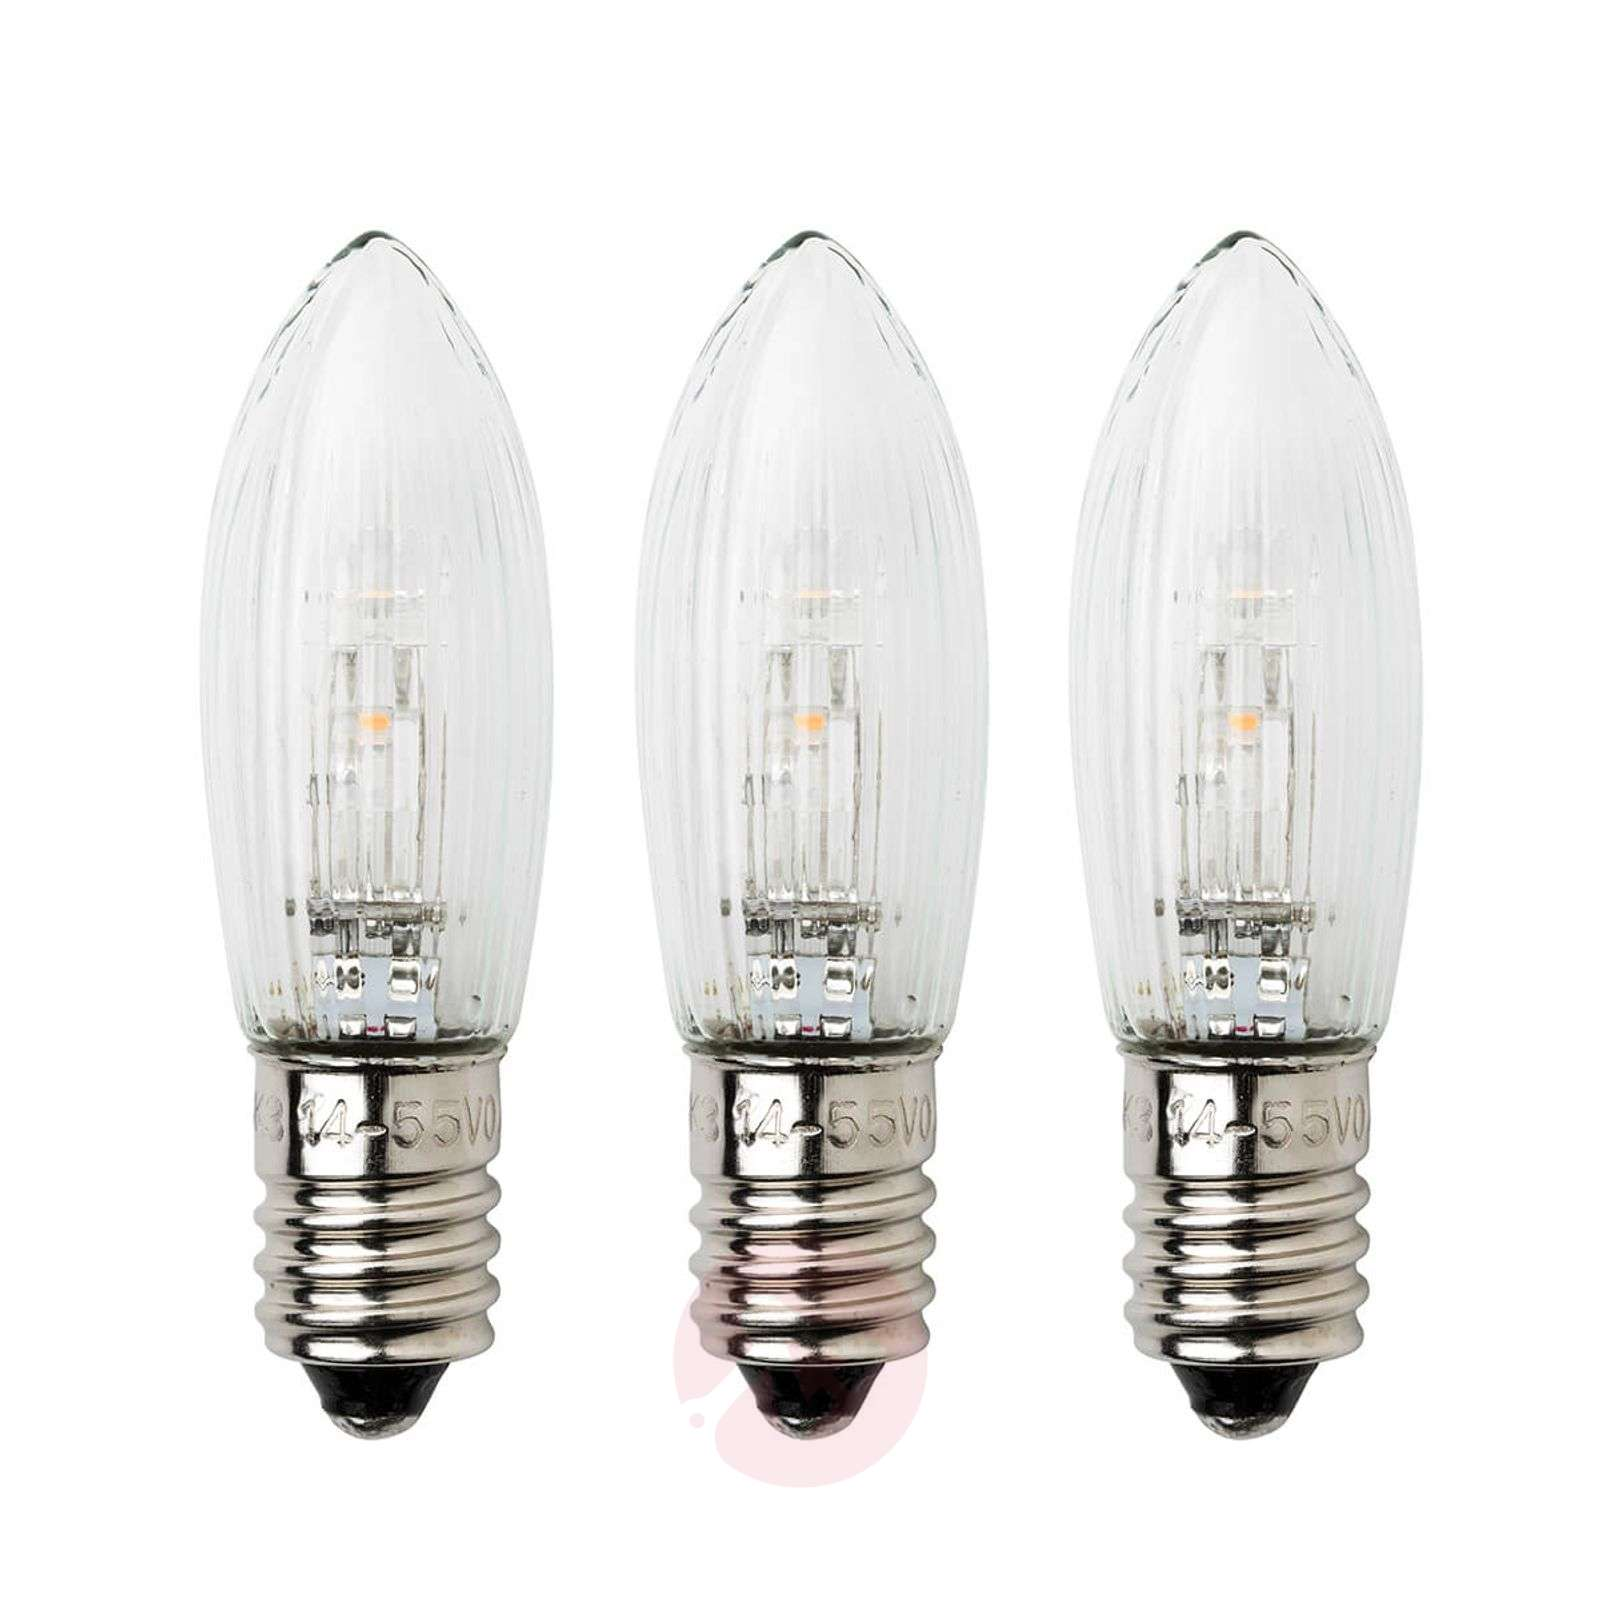 Review e10 0 3 w 24 v spare bulbs pack of 3 31 For Your House - Modern 24 fluorescent light fixture Top Design